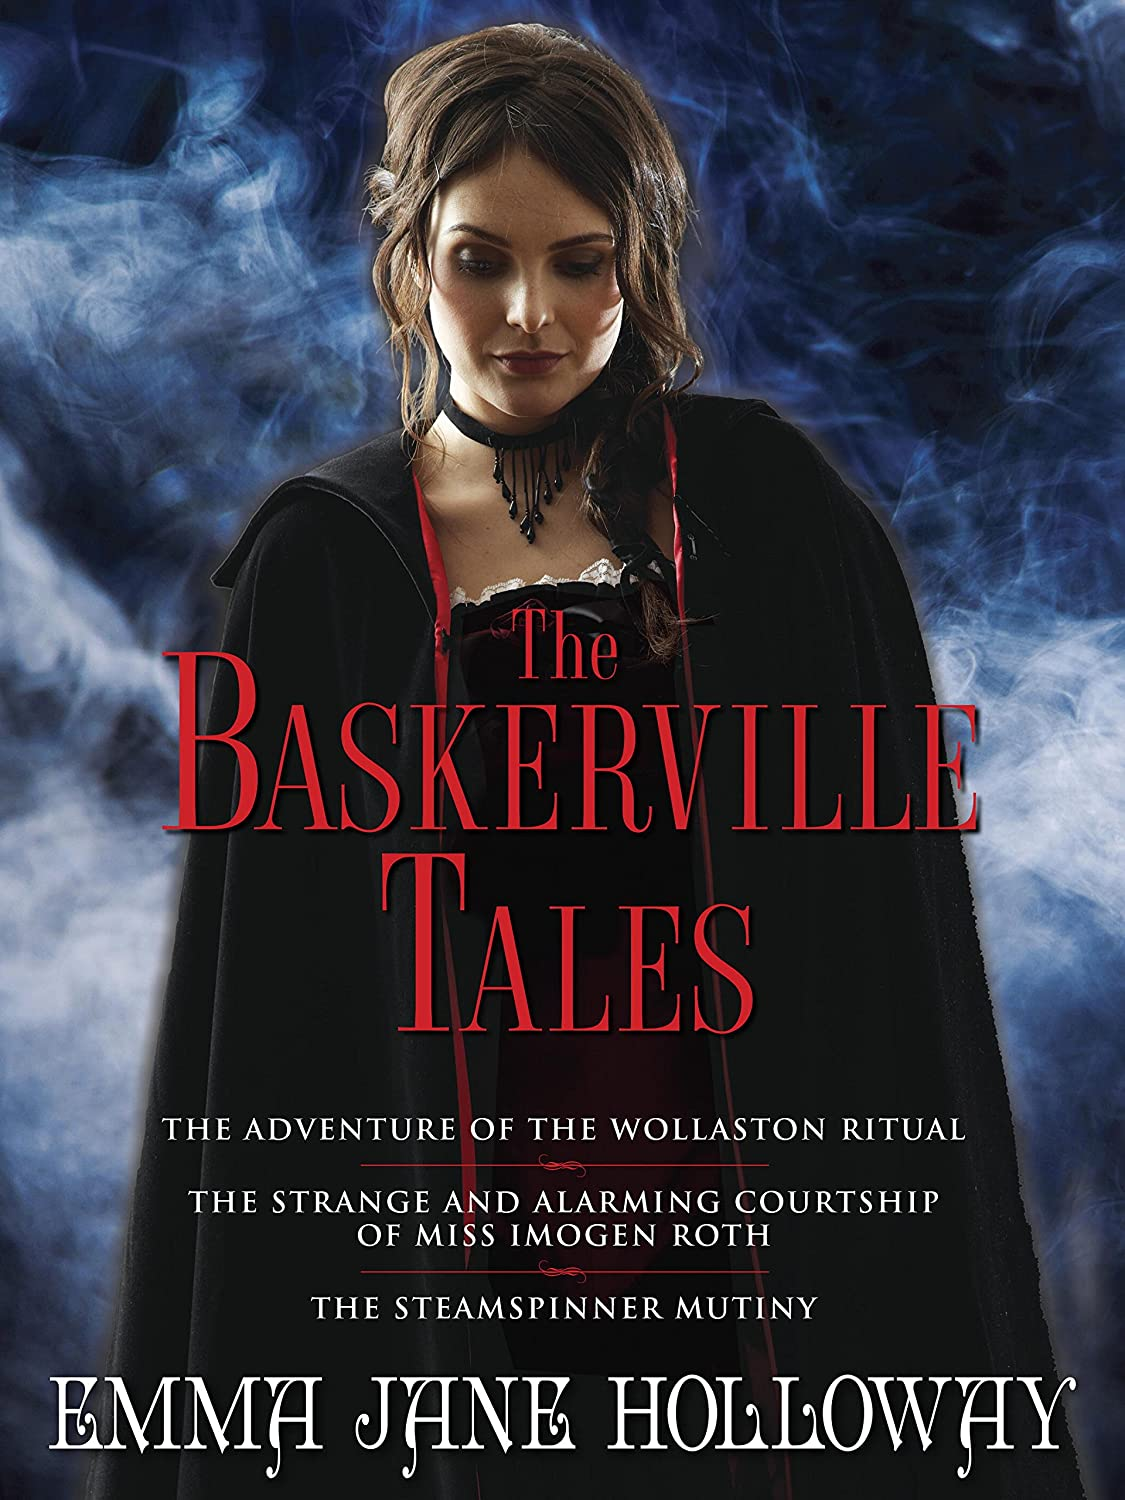 The Baskerville Tales (short Stories): The Adventure Of The Wollaston  Ritual, The Strange And Alarming Courtship Of Miss Imogen Roth, The  Steamspinner